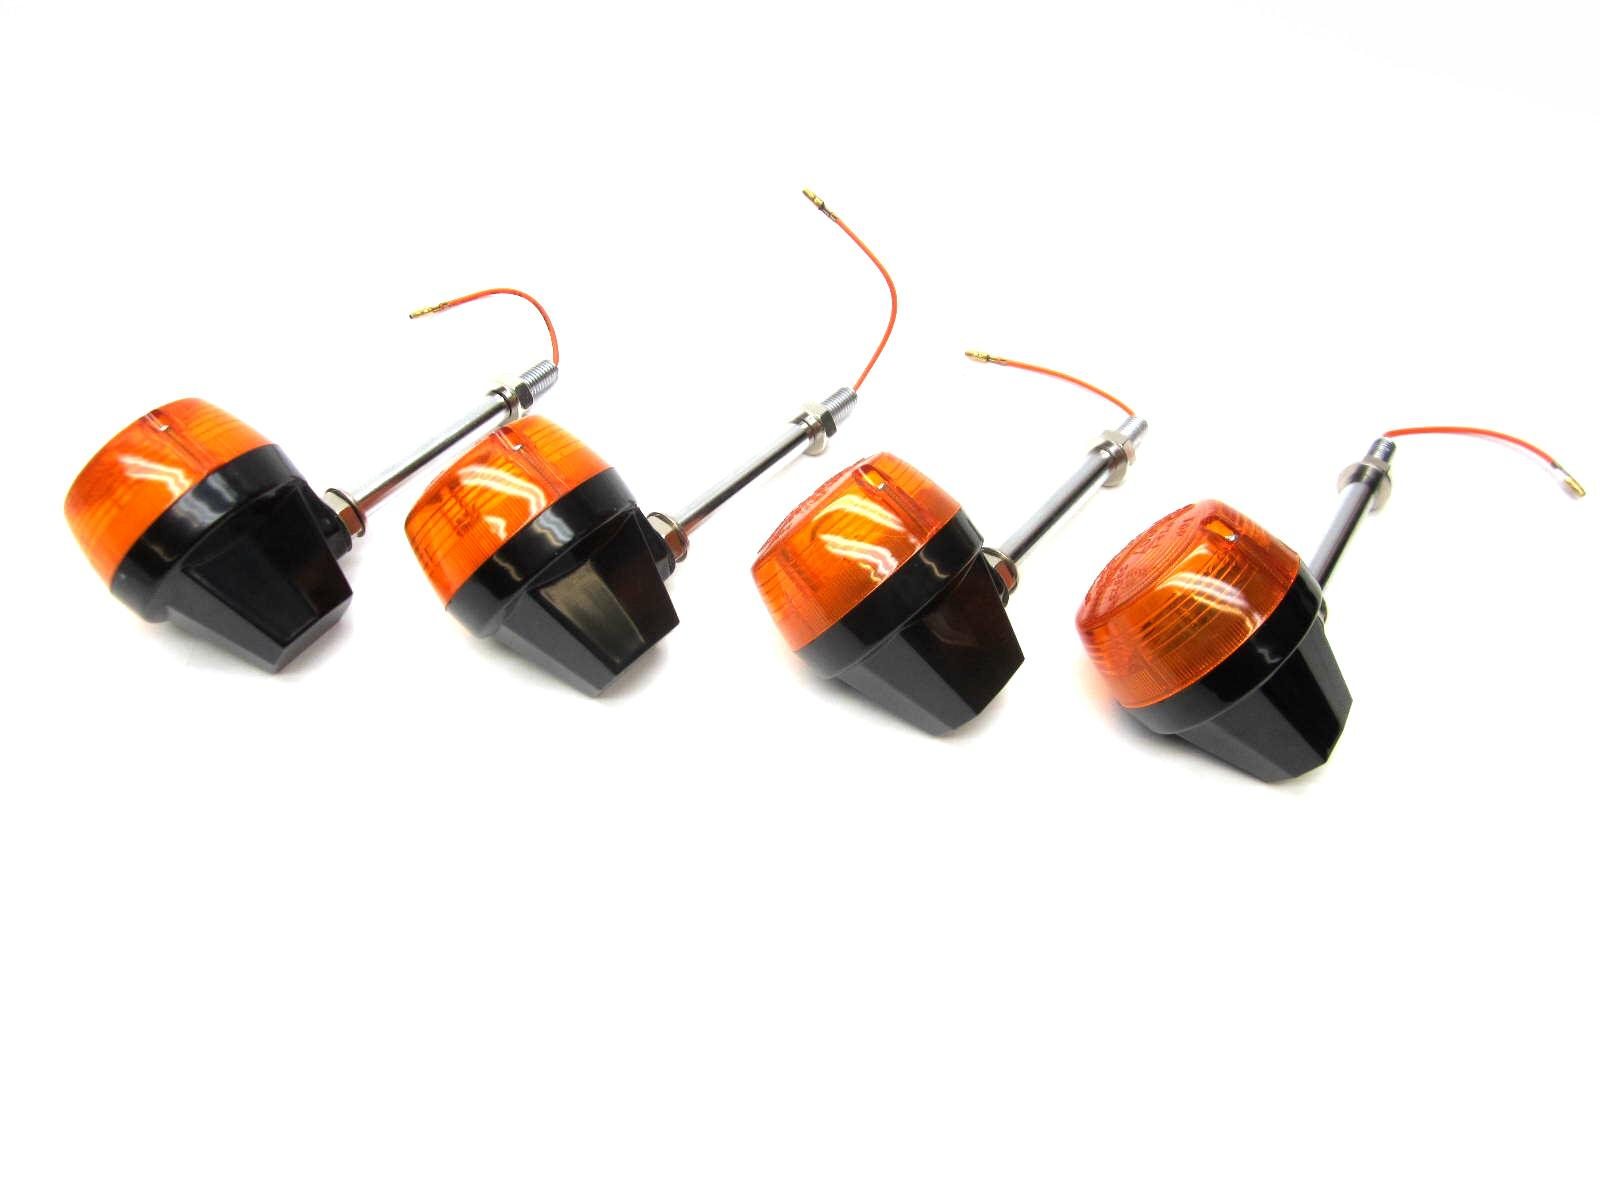 Set of 4 CEV replica black turn signals with stems